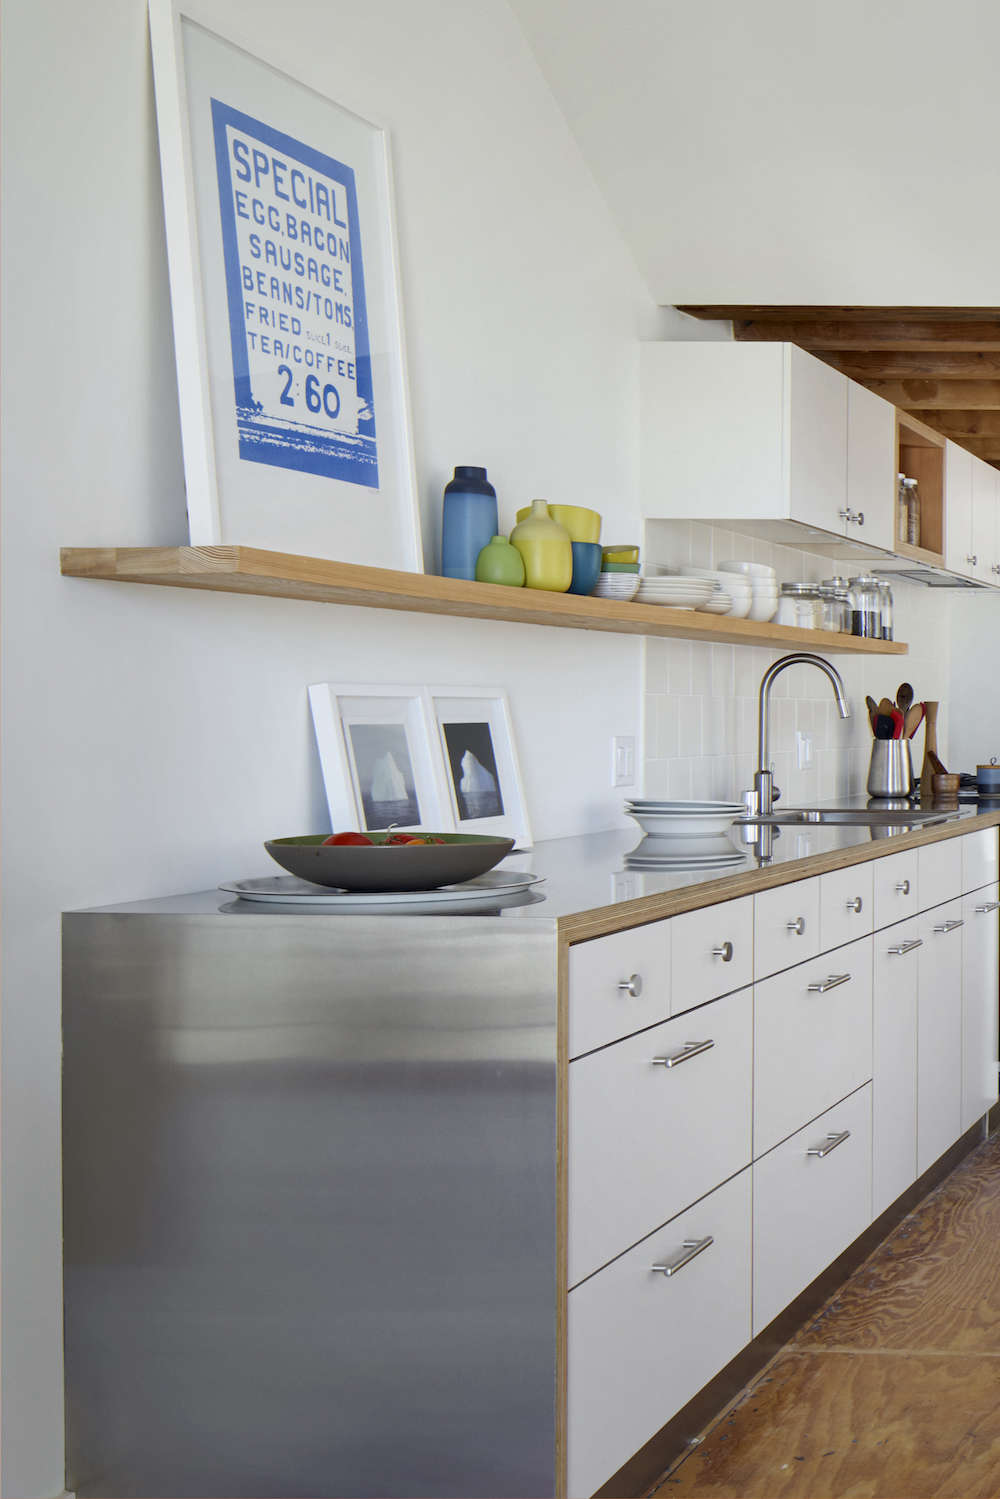 inexpensive countertops for kitchens small kitchen counter lamps 10 favorites architects budget countertop picks remodelista favorite